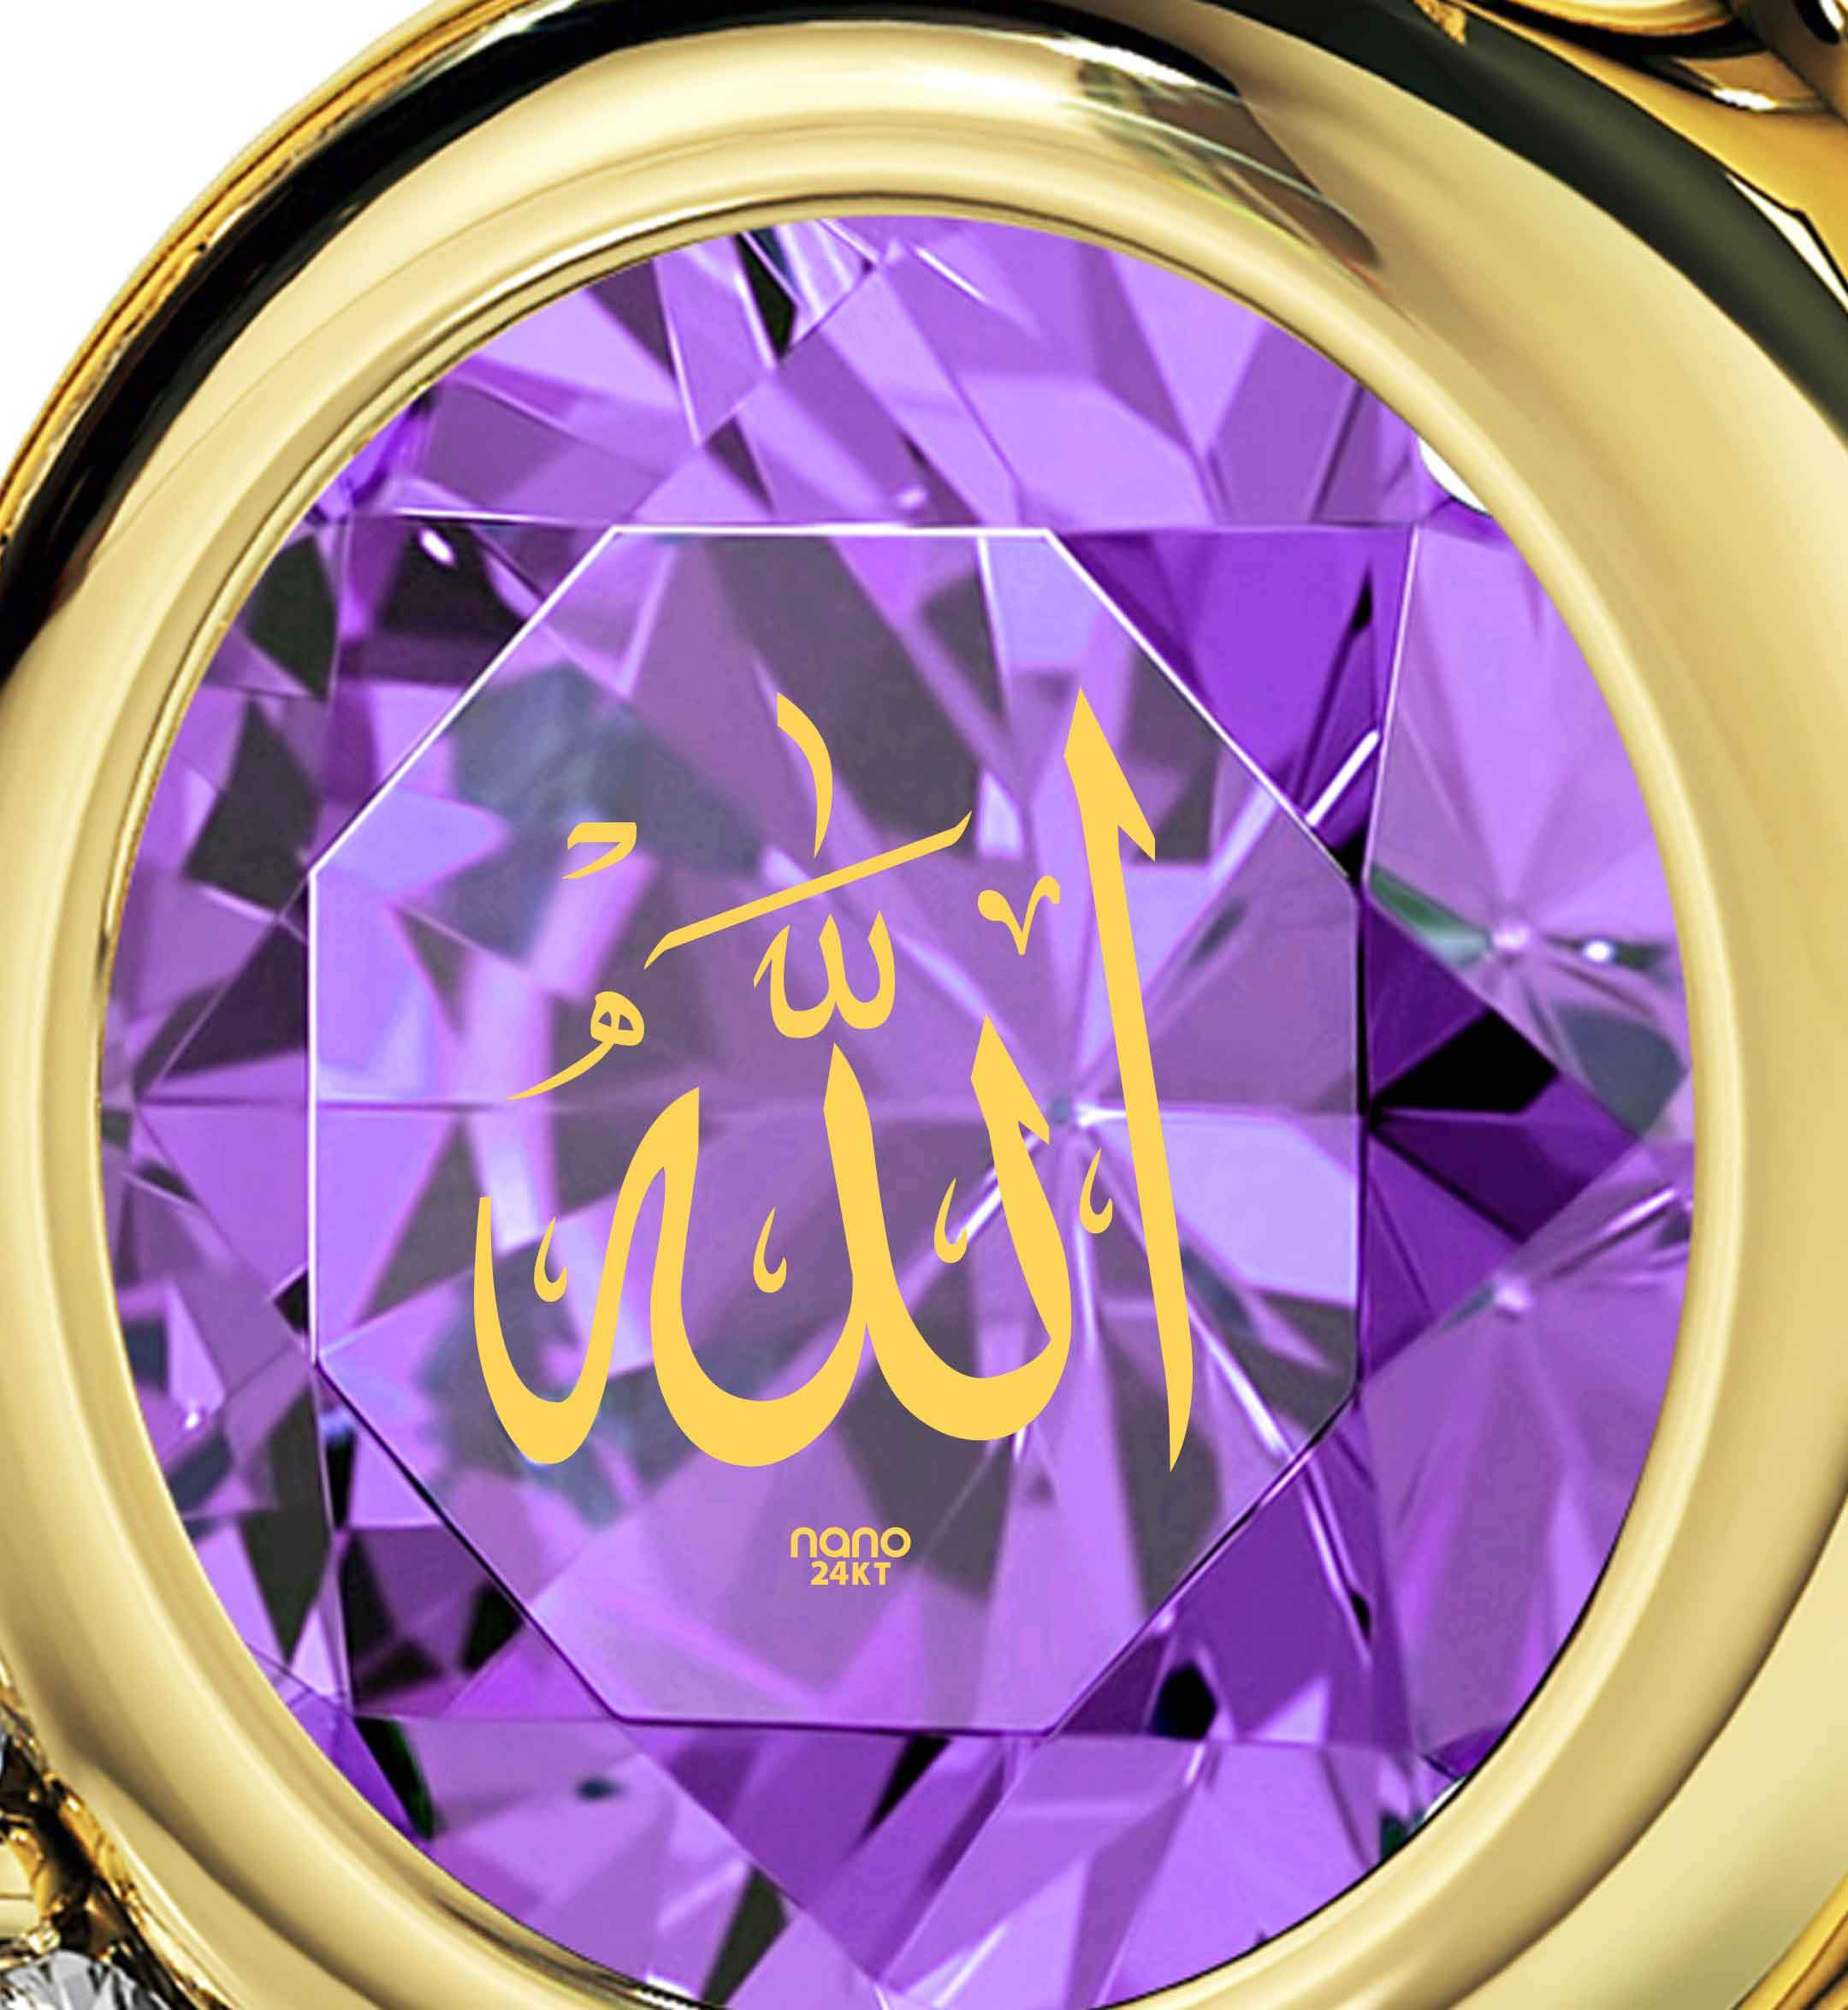 Allah Necklace Pendant: Allah imprinted in Pure Gold - Heart with Diamonds - 14k Gold - Nano Jewelry